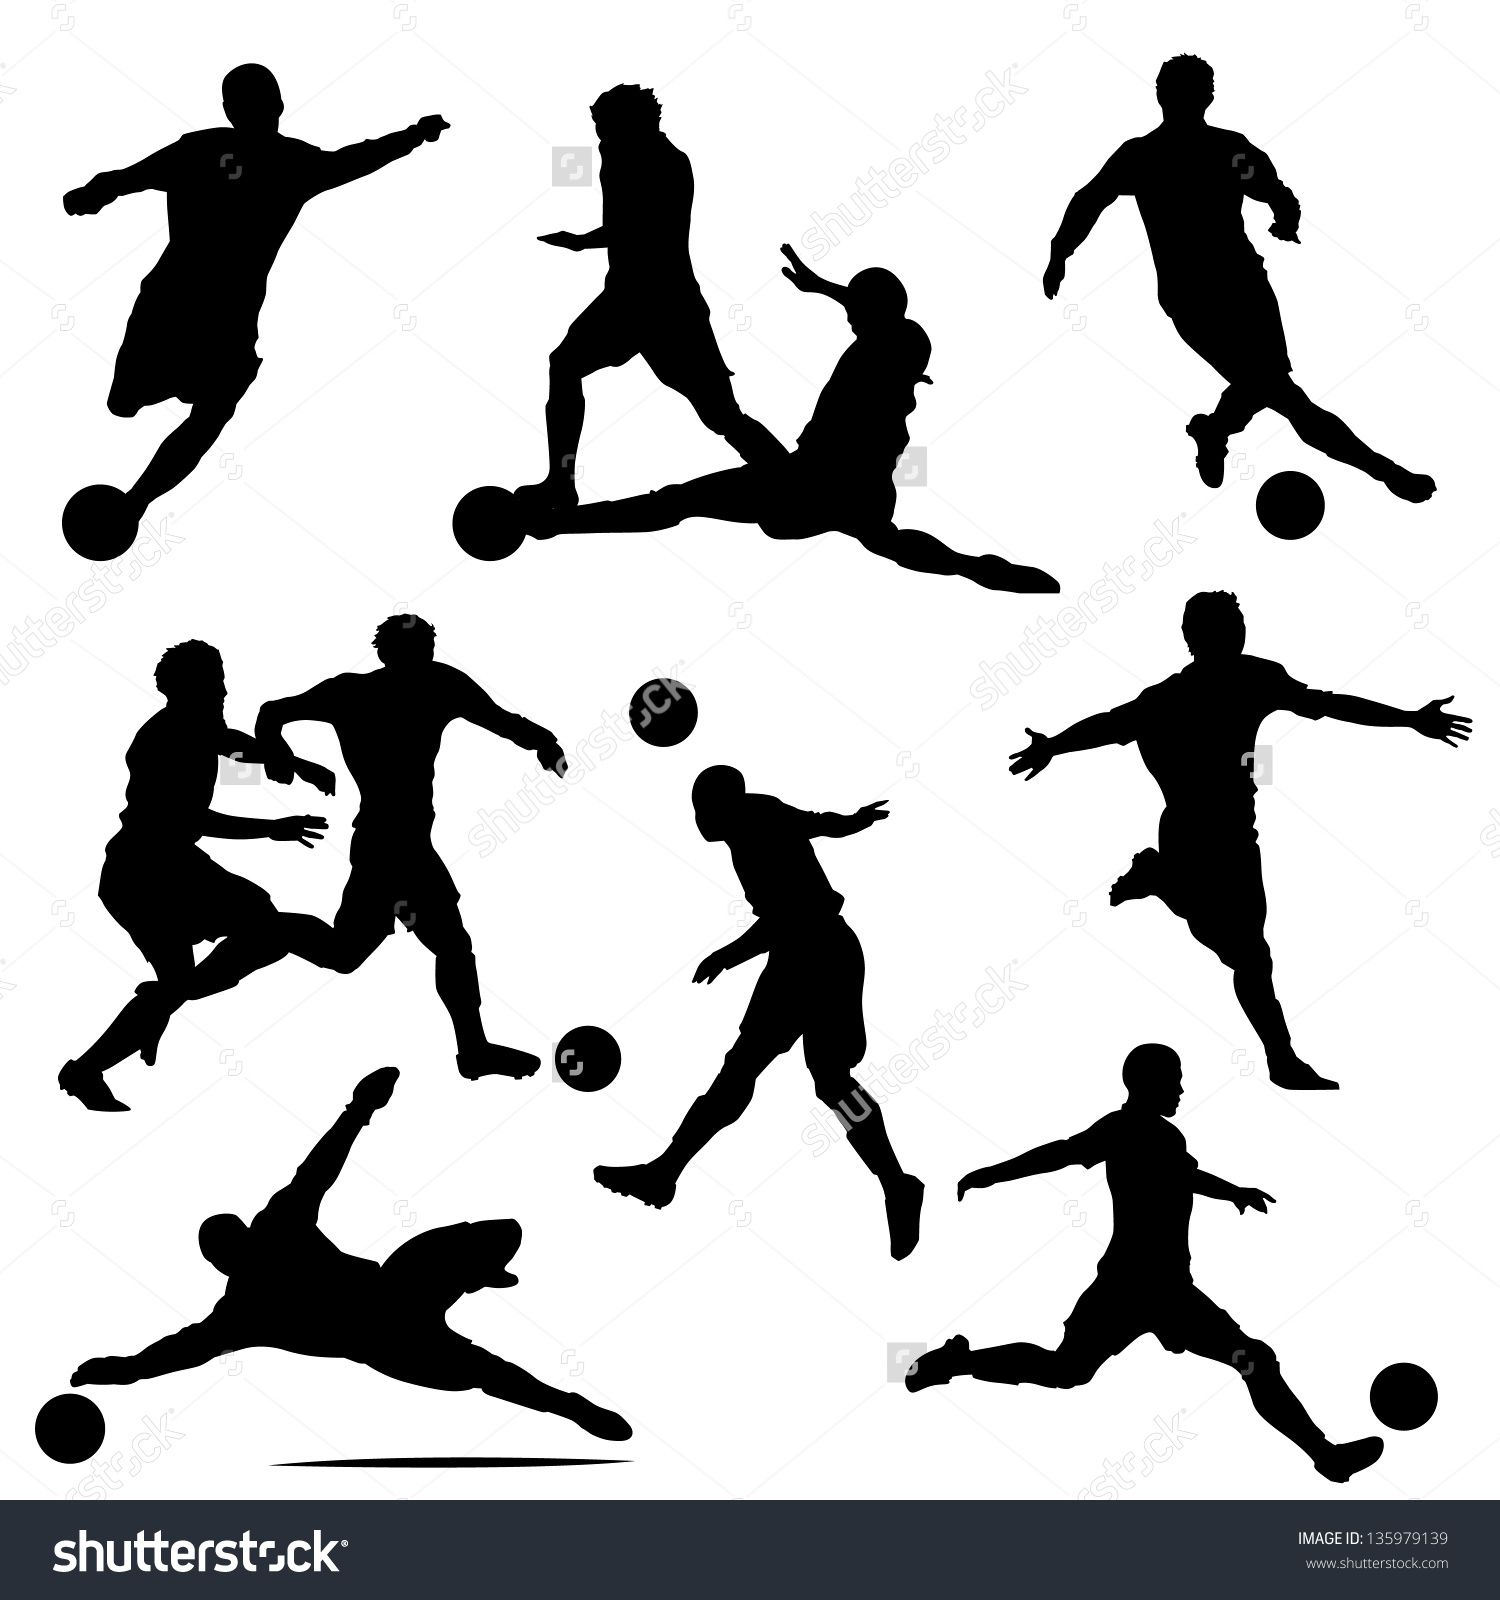 Various Isolated Poses Of Soccer Players In Silhouettes Bocetos Tatuajes Tatuajes Futbol Tatuajes Para Hombres